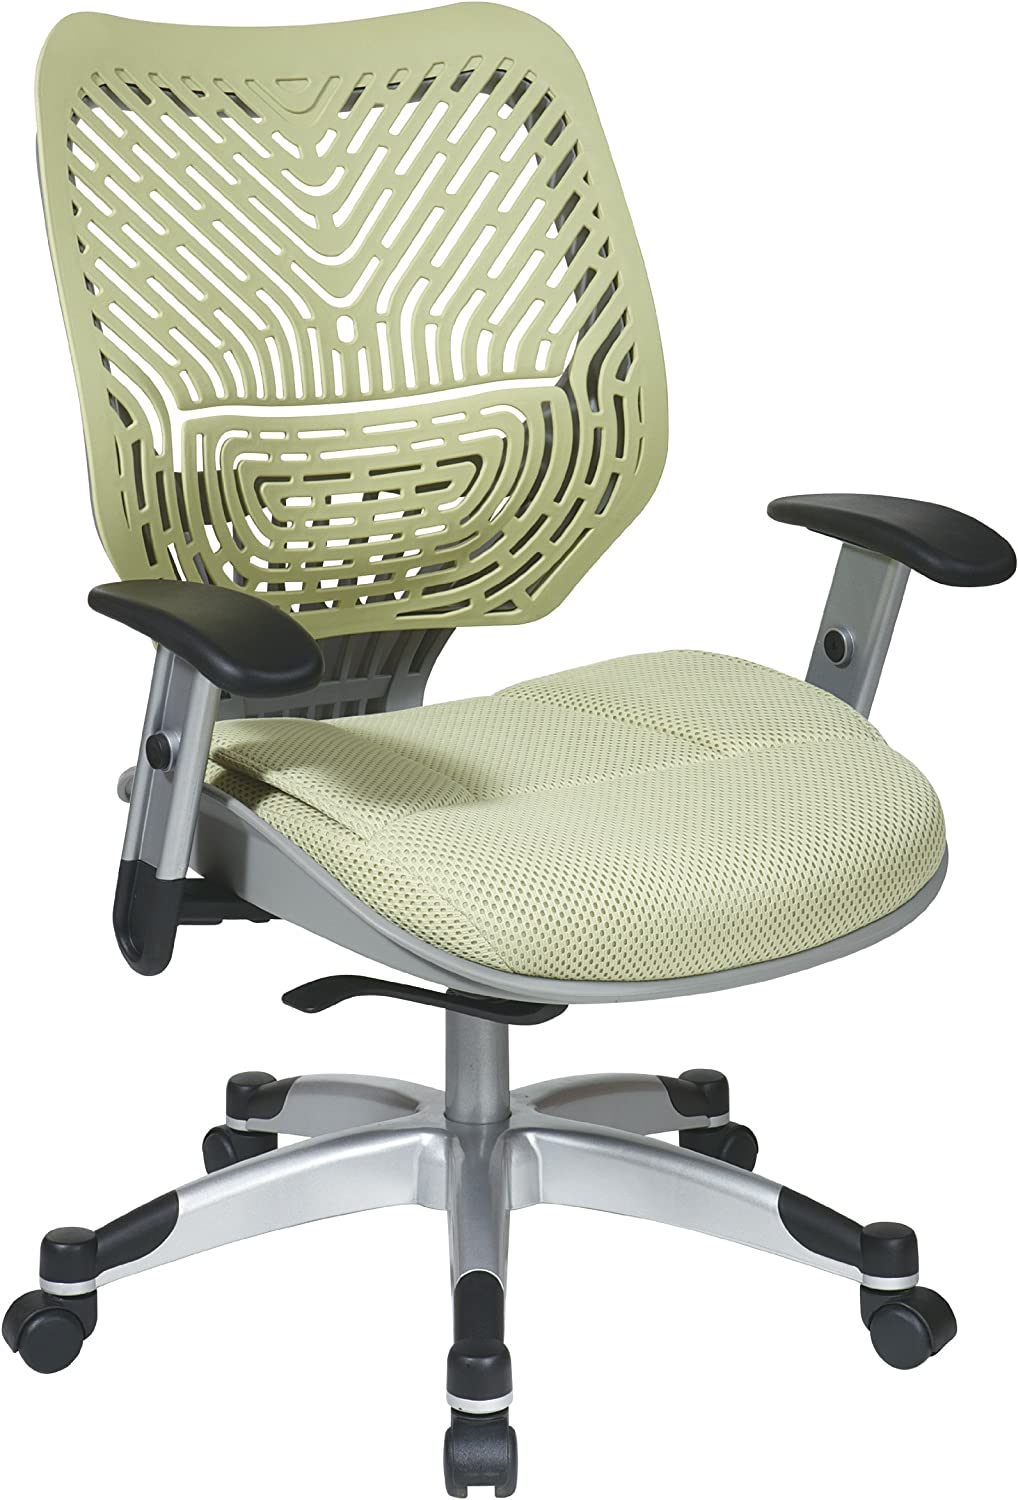 SPACE Seating REVV Self Adjusting SpaceFlex Kiwi Backrest Support and Padded Kiwi Mesh Seat with Adjustable Arms and Platinum Finish Base Managers Chair